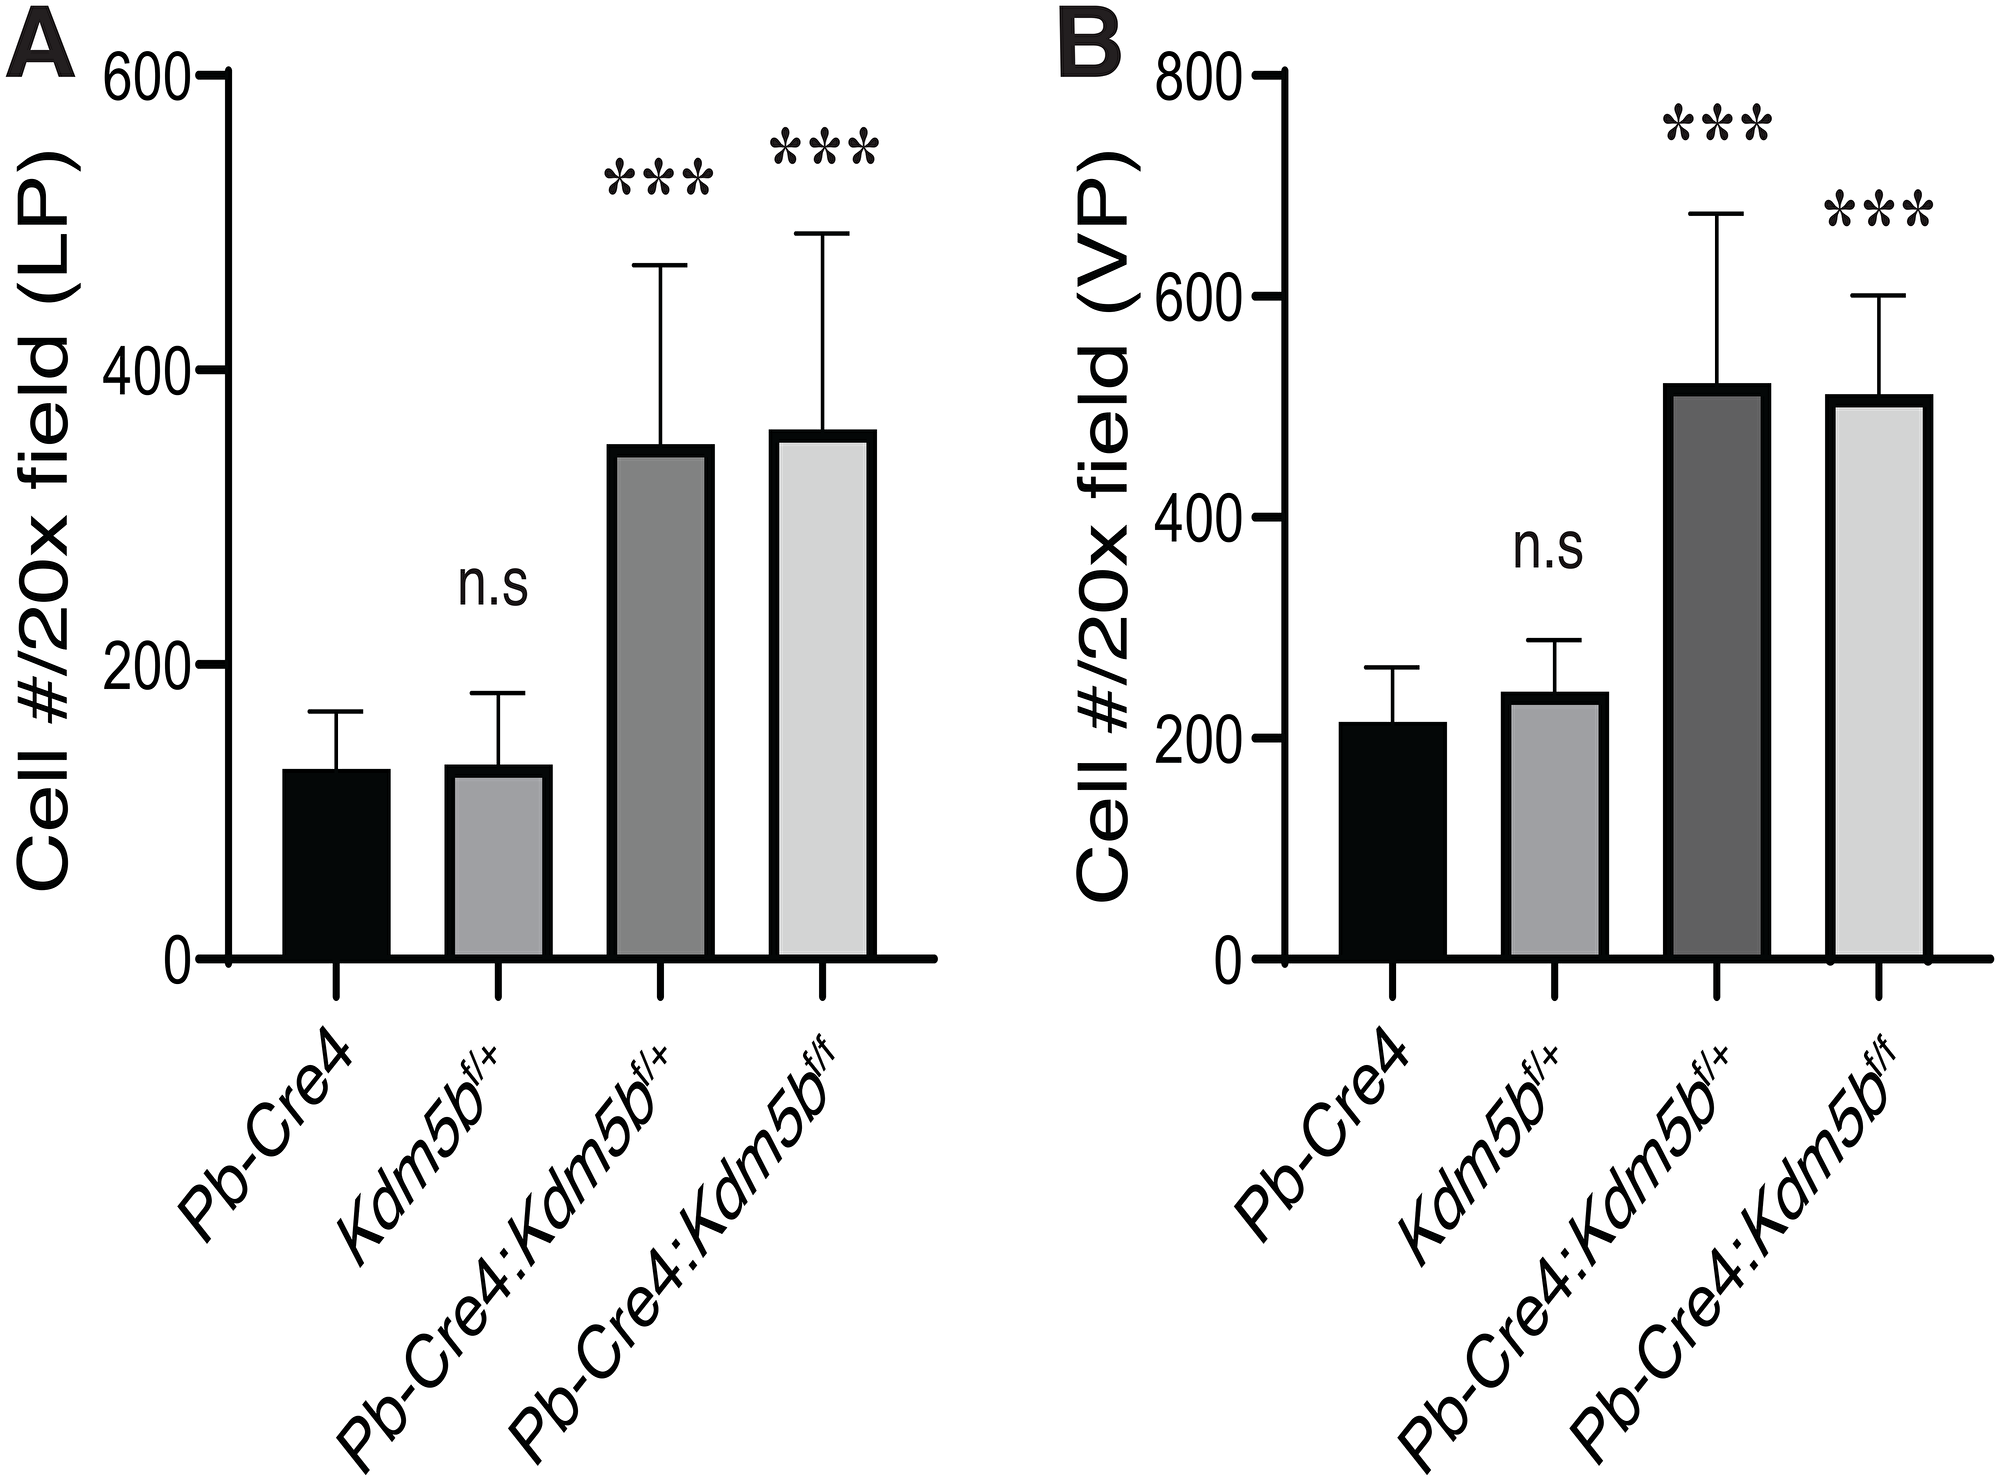 Kdm5b deficiency causes increased cellularity in the mouse prostates.